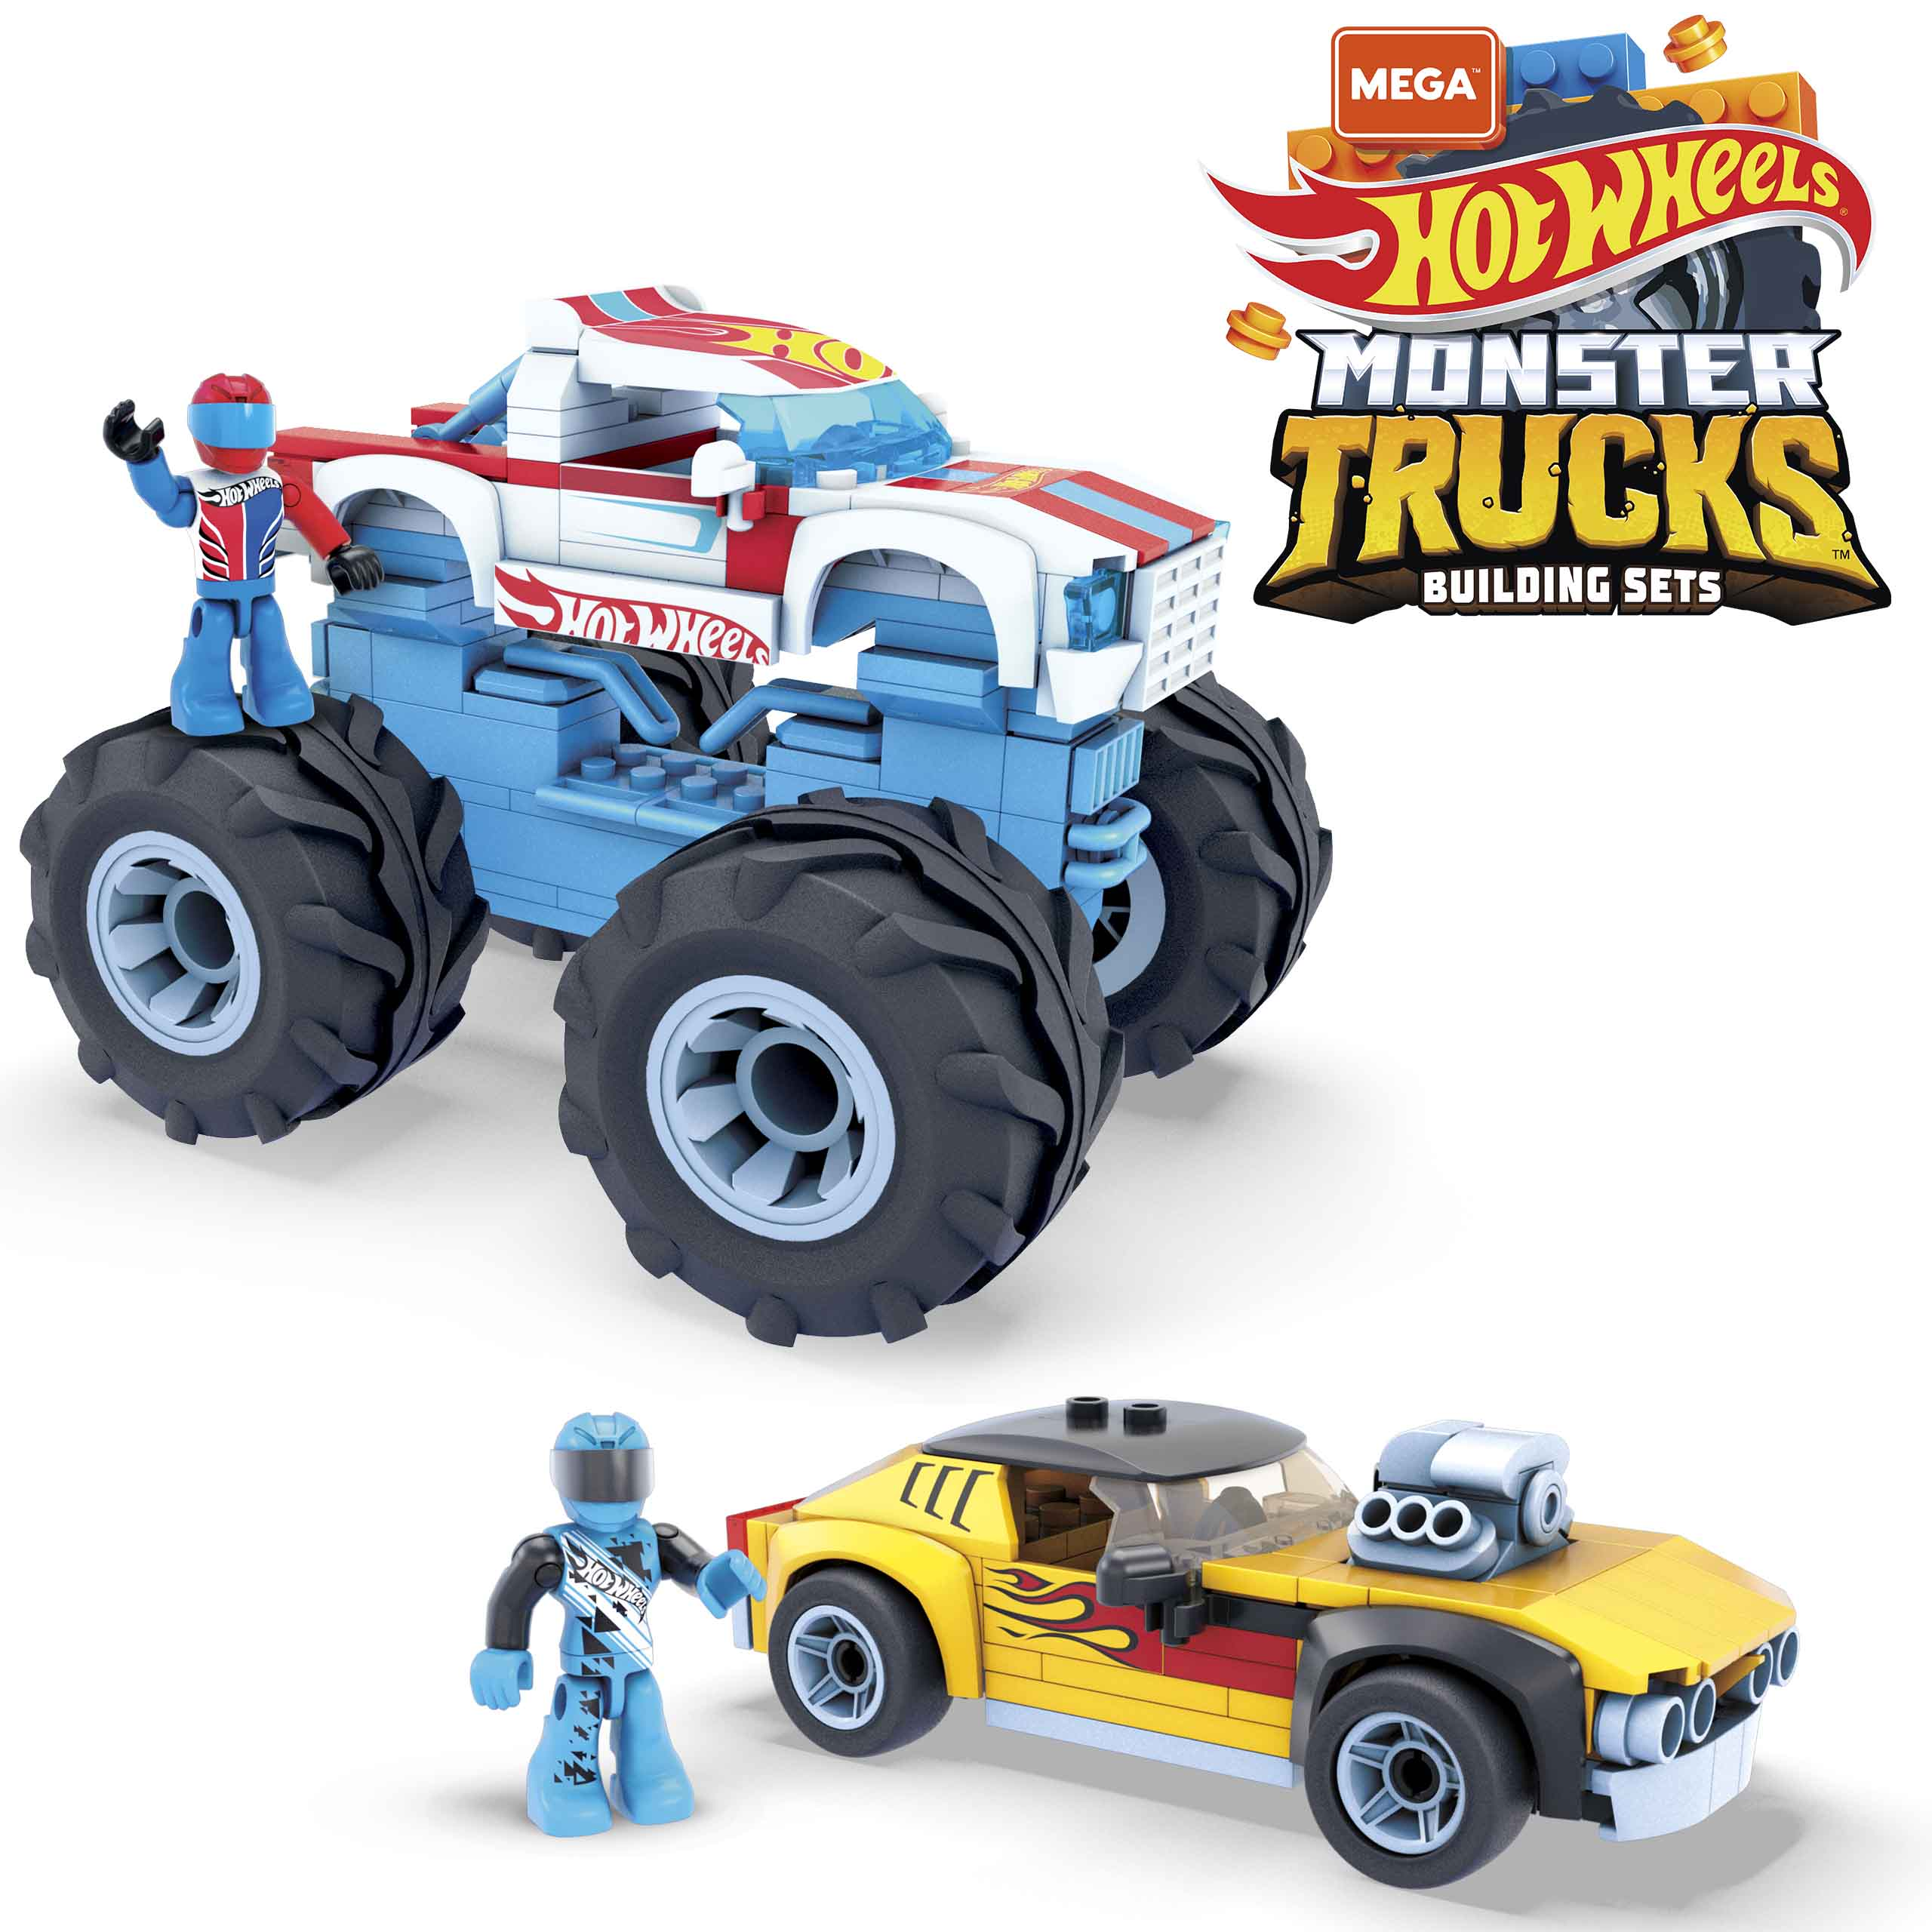 MEGA Construx launches a line of buildable Hot Wheels vehicles 18